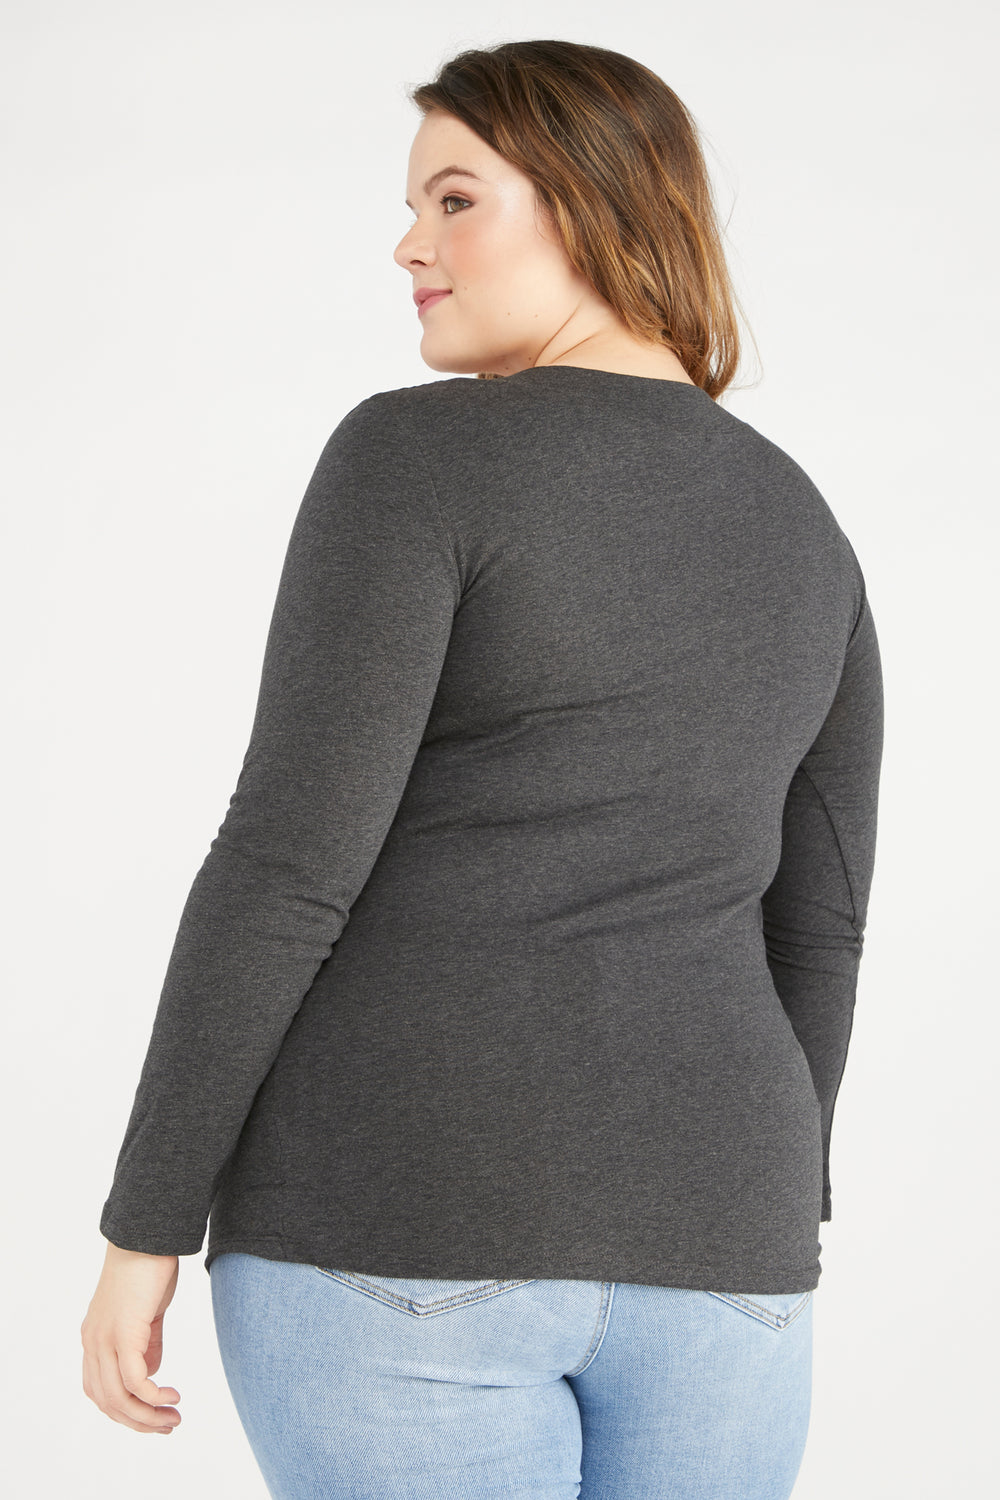 Wide Band V-Neck Long Sleeve Top Charcoal